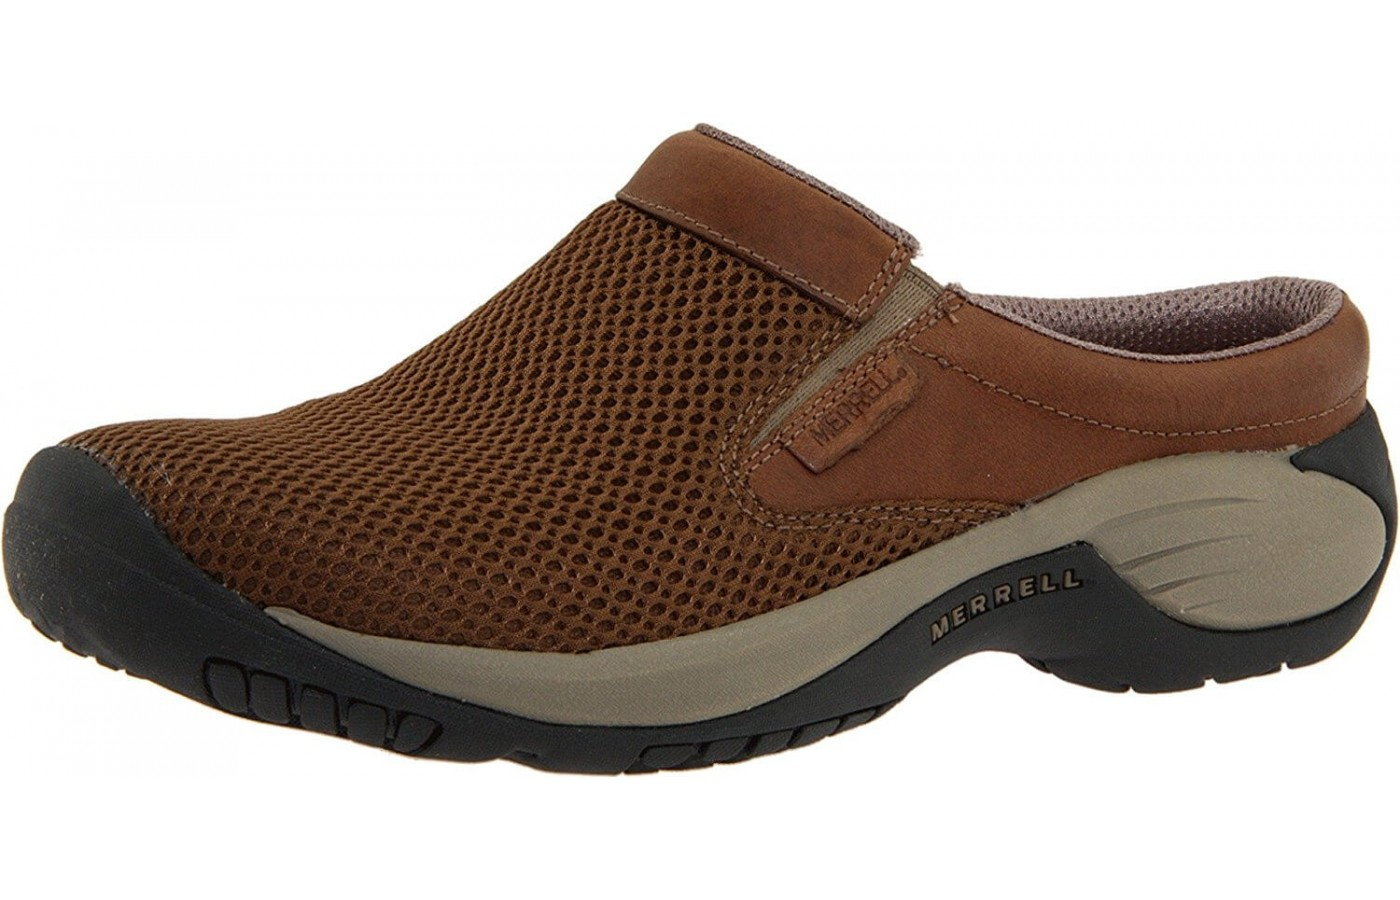 The Merrell Encore Bypass is a good recovery shoe option